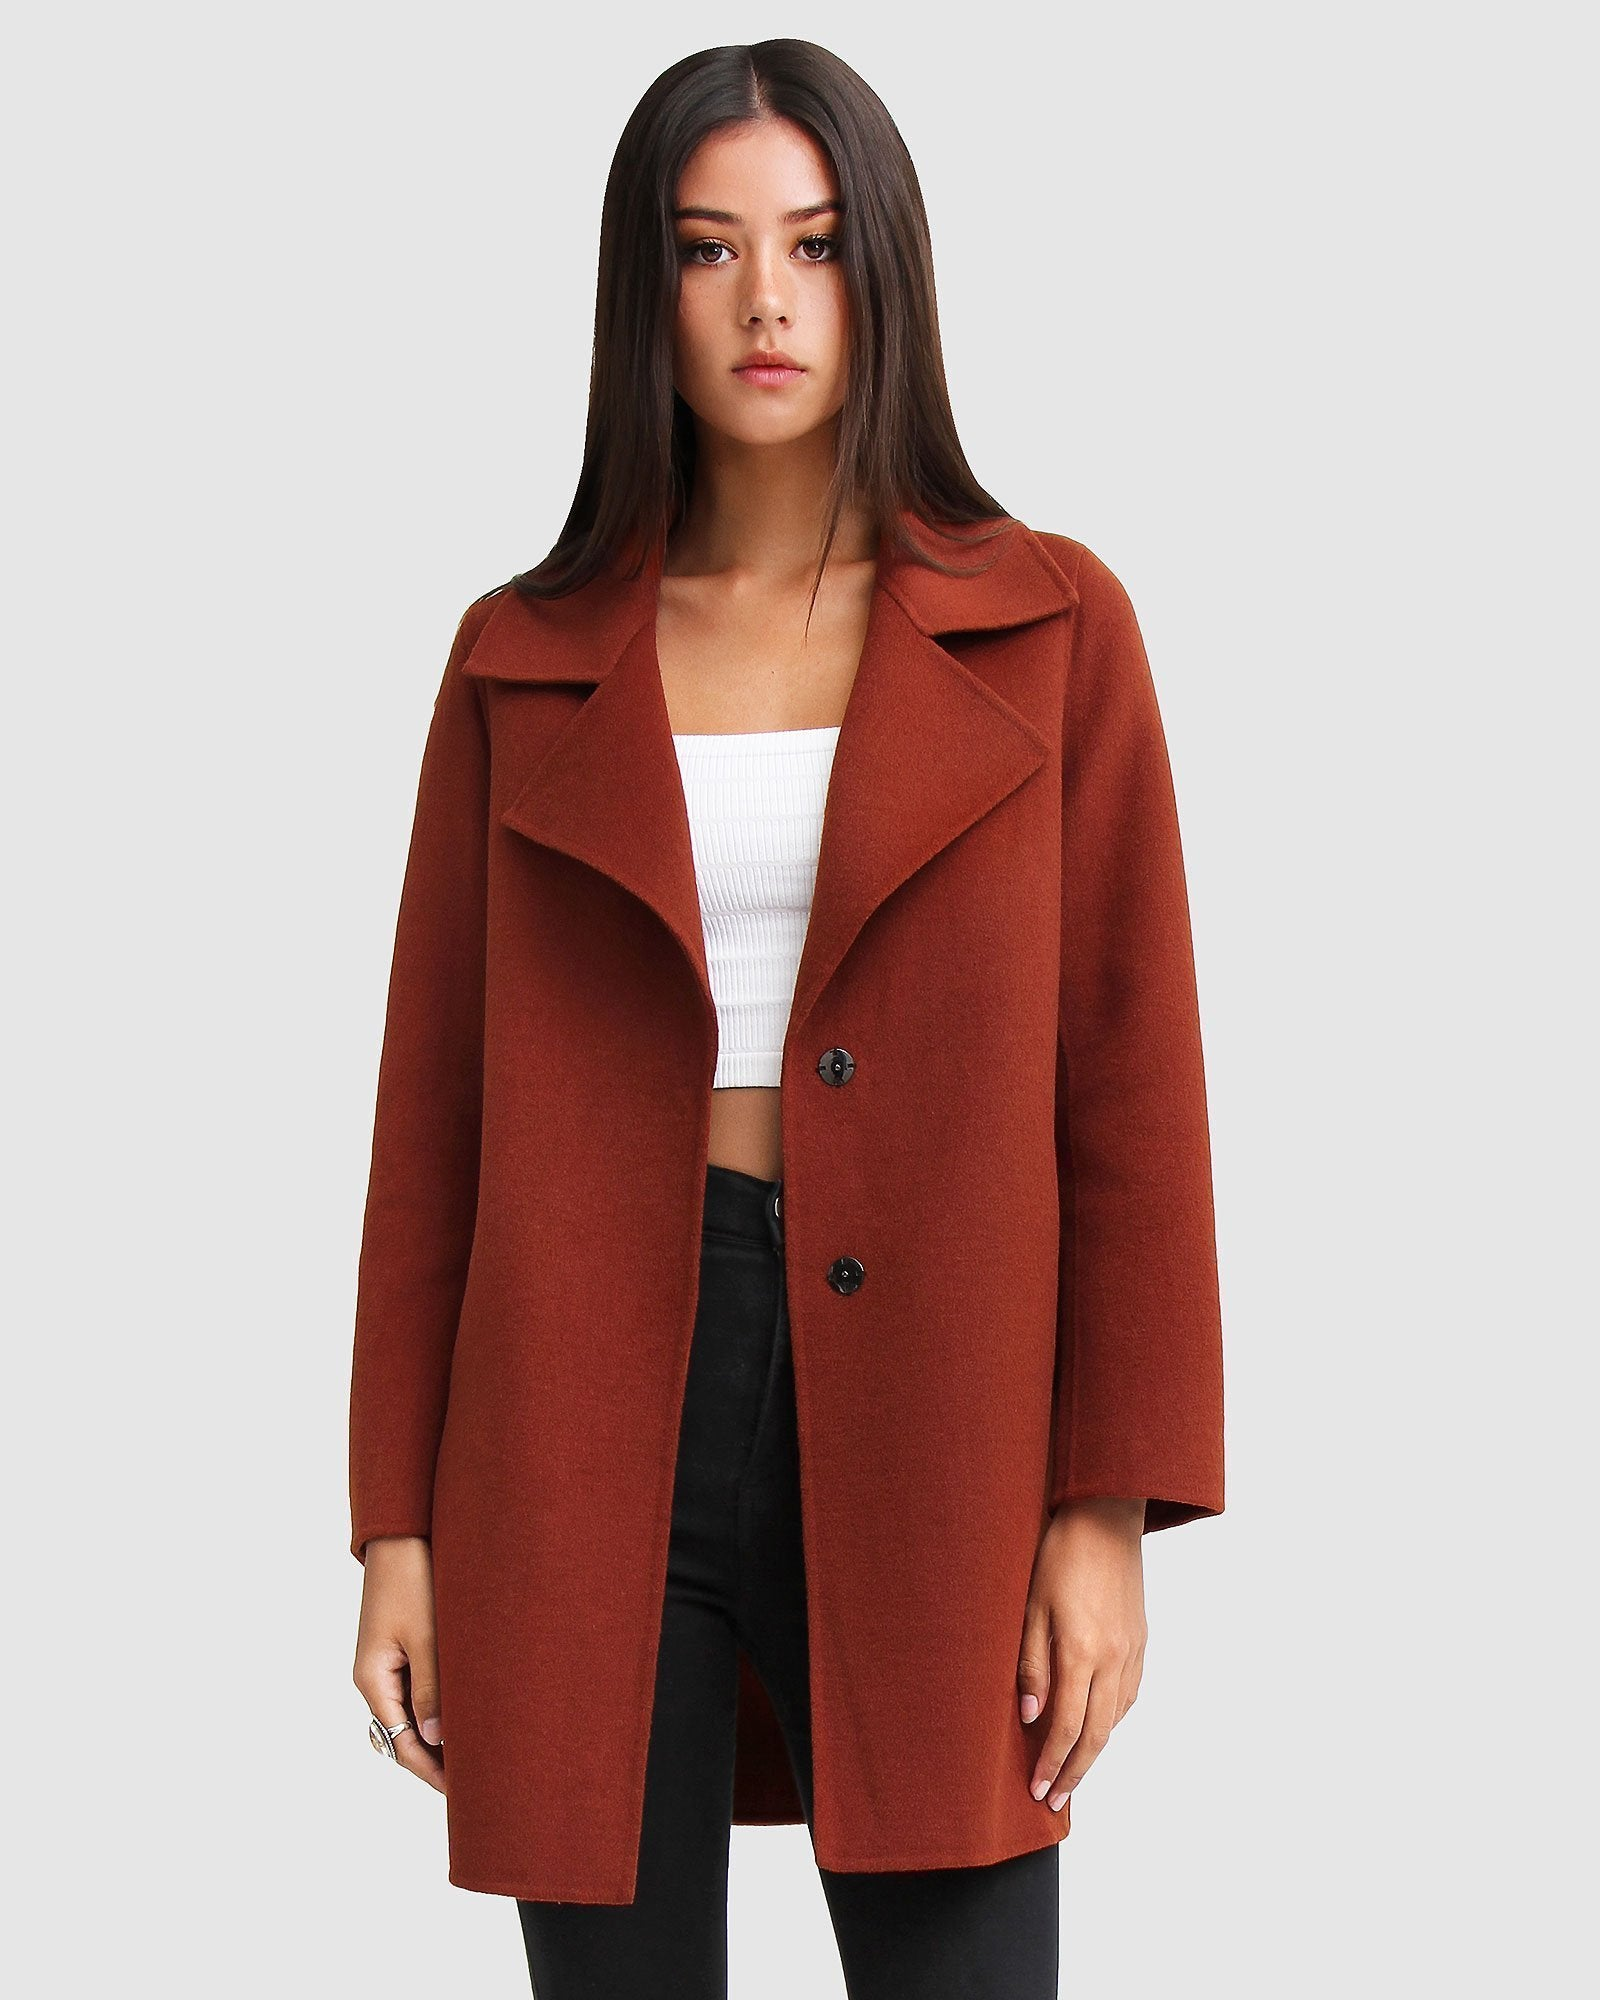 Ex-Boyfriend Wool Blend Oversized Jacket - Caramel